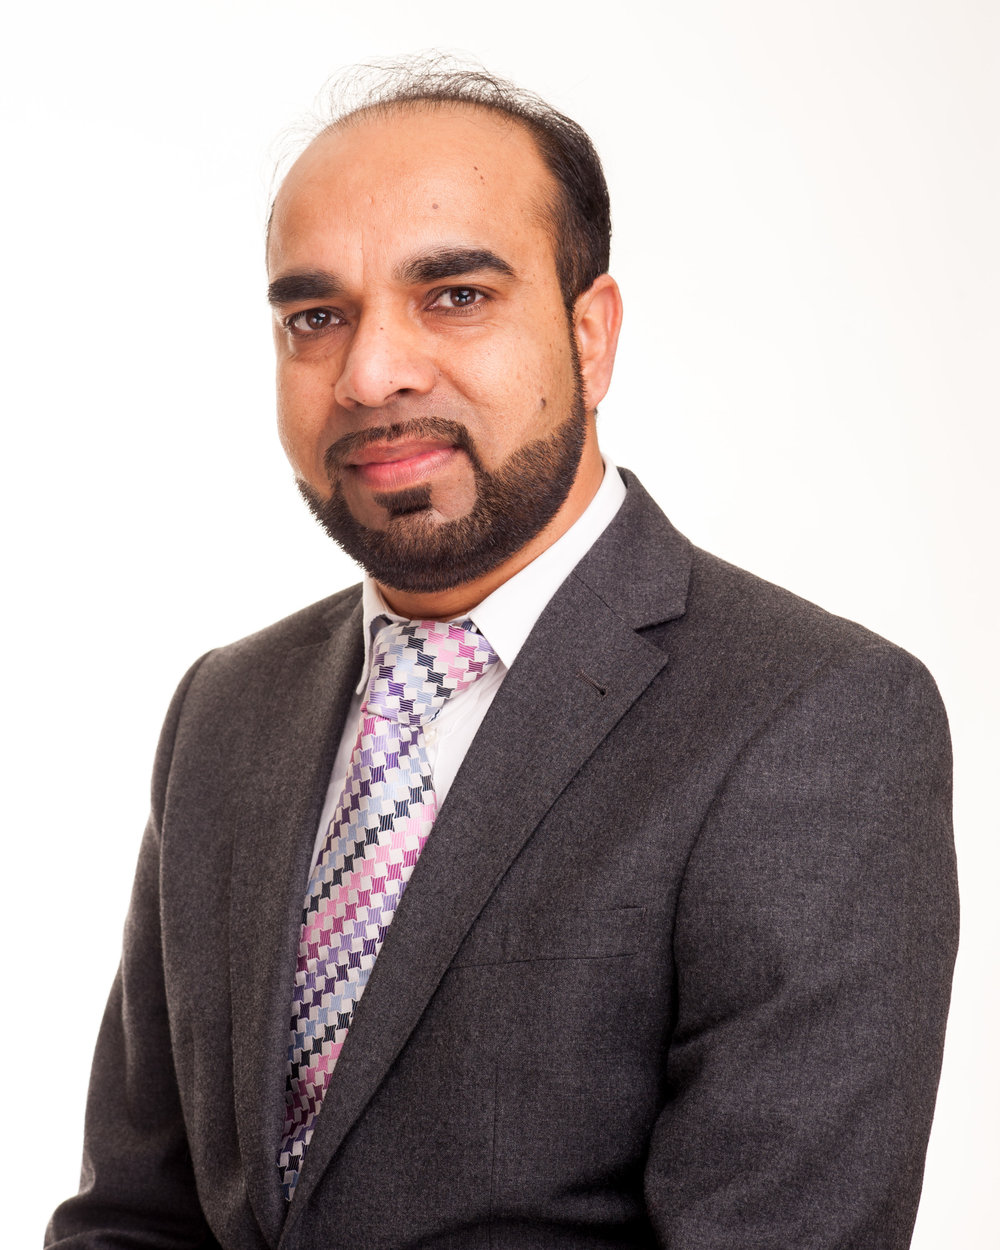 """""""We provide each student with an individual programme of work designed to help build their confidence, extend their knowledge and develop learning skills."""" - Khalid Mahmood, Principal -"""